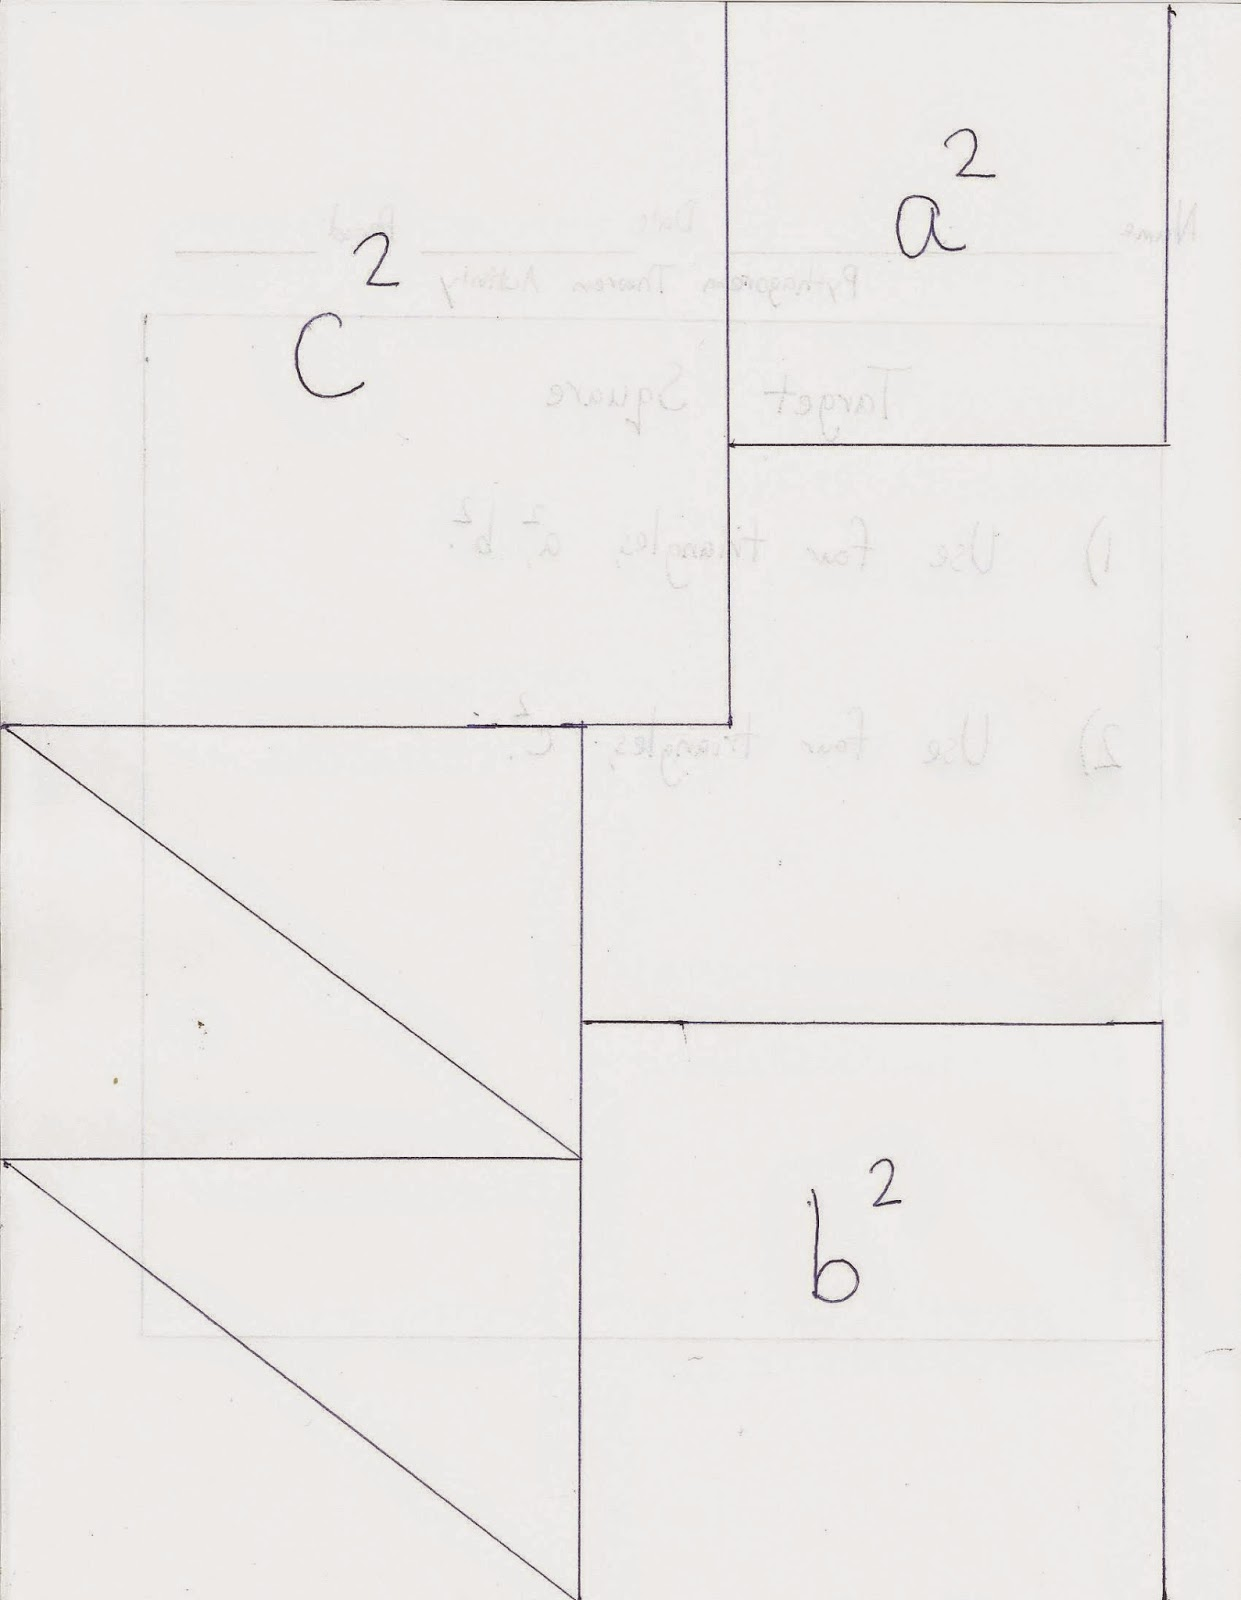 Printables Activity Worksheet Distance And Midpoint Exploration Answers geometry common core style january 2015 the lesson earlier this week on distance formula at least for perimeter more may be included as we go along of course area will have to wait